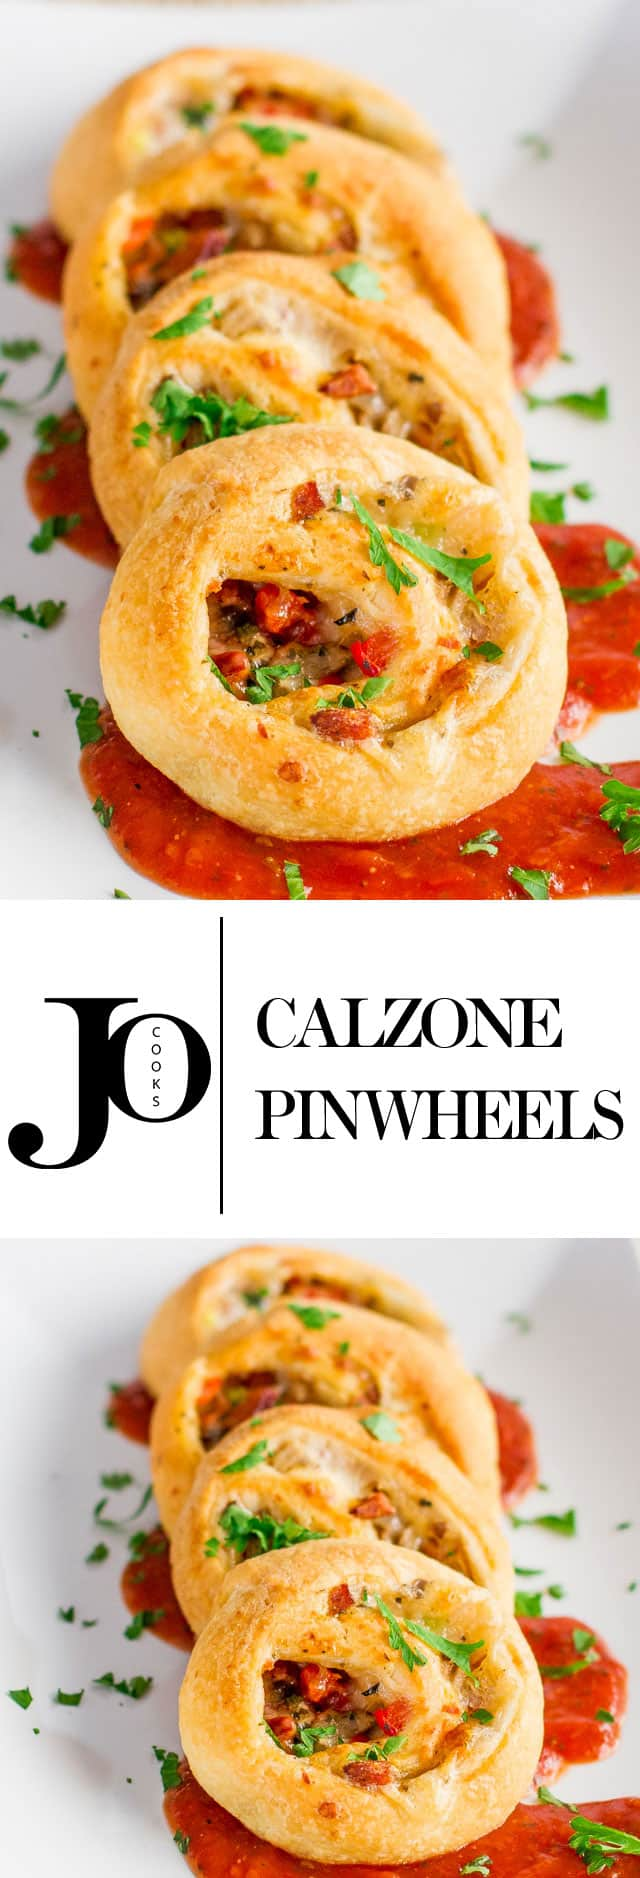 Calzone Pinwheels – pretty bites that are easy, cheesy and adorable. Perfect little appetizers full of flavor, they're cheesy and delicious.